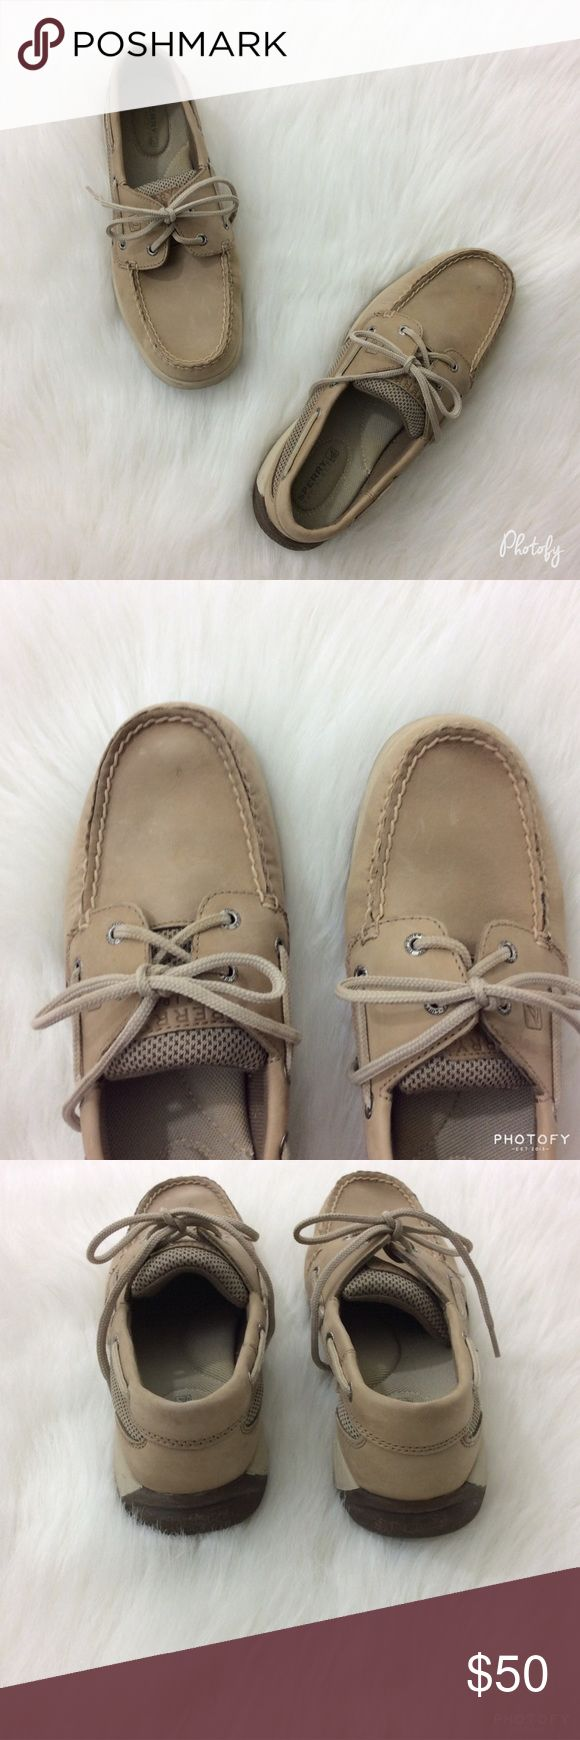 SPERRY TOP-SIDER TAN BOAT SHOES Sperry Top-Sider Tan Boat Shoes  Comfortable with Soft Cushioning   Looks Great with Shorts or Jeans  Leather Upper  Worn Only in Store, Like New  Size 7 1/2 M  🚫NO TRADES Sperry Top-Sider Shoes